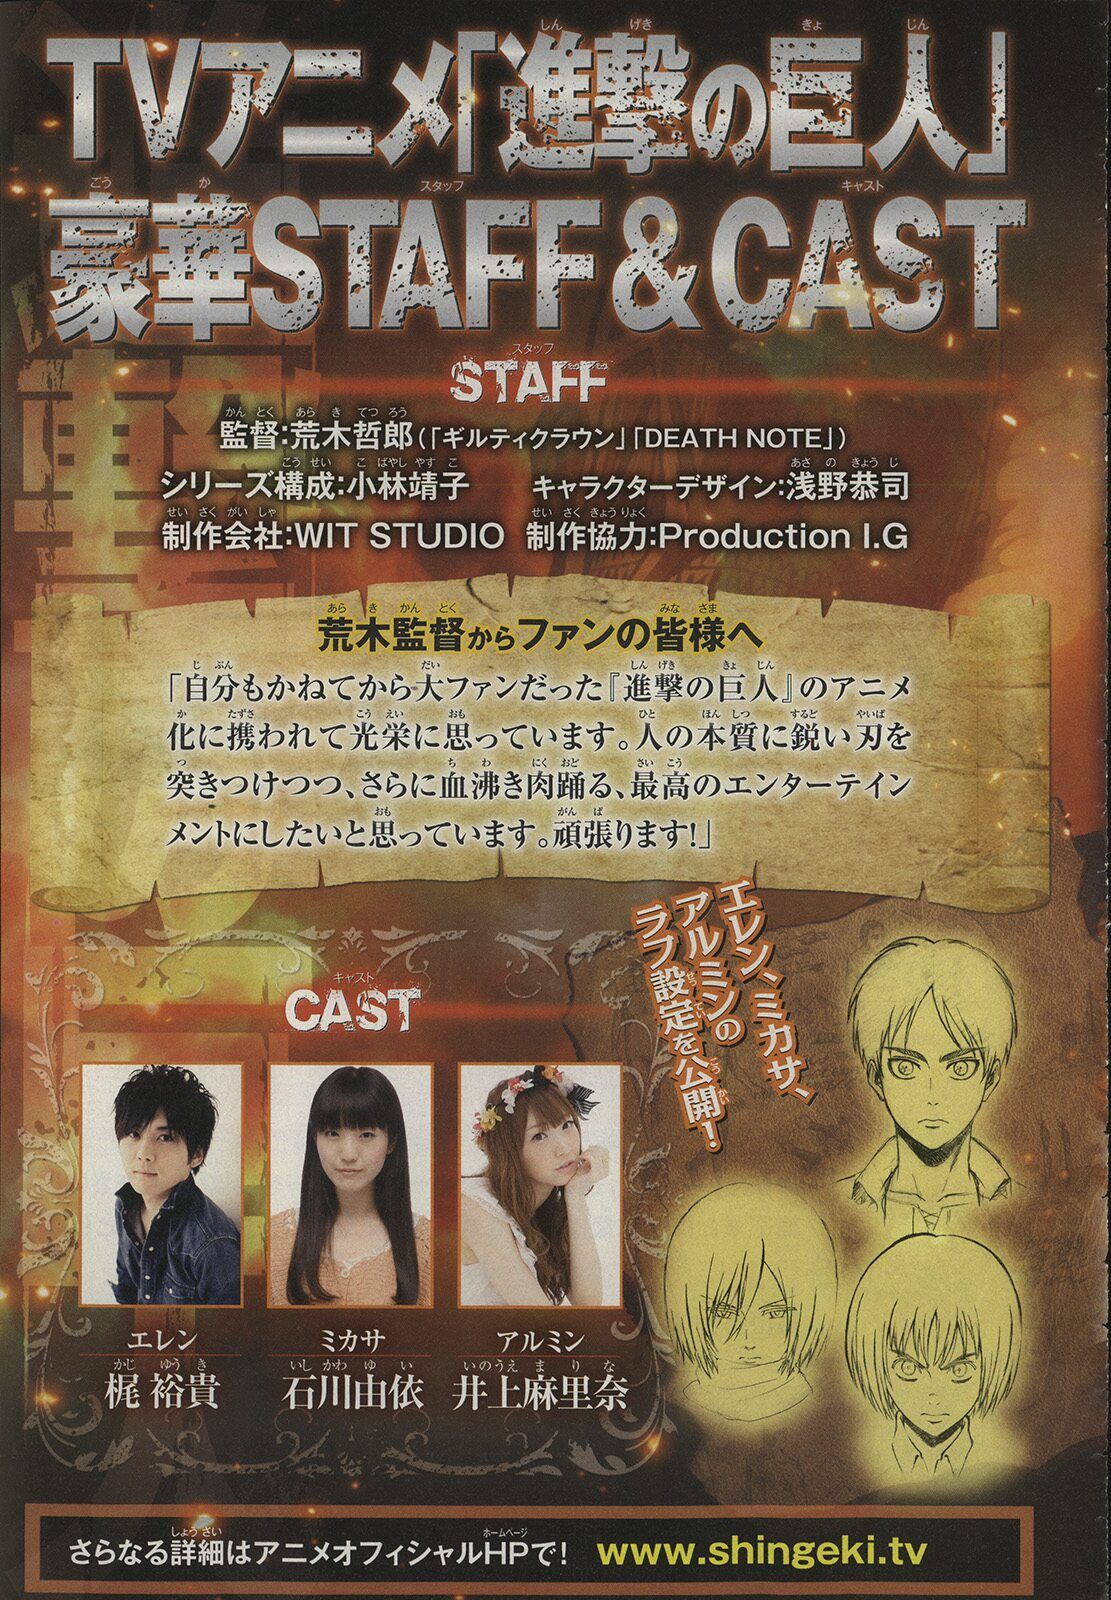 Shingeki no Kyojin anime announced pic 3